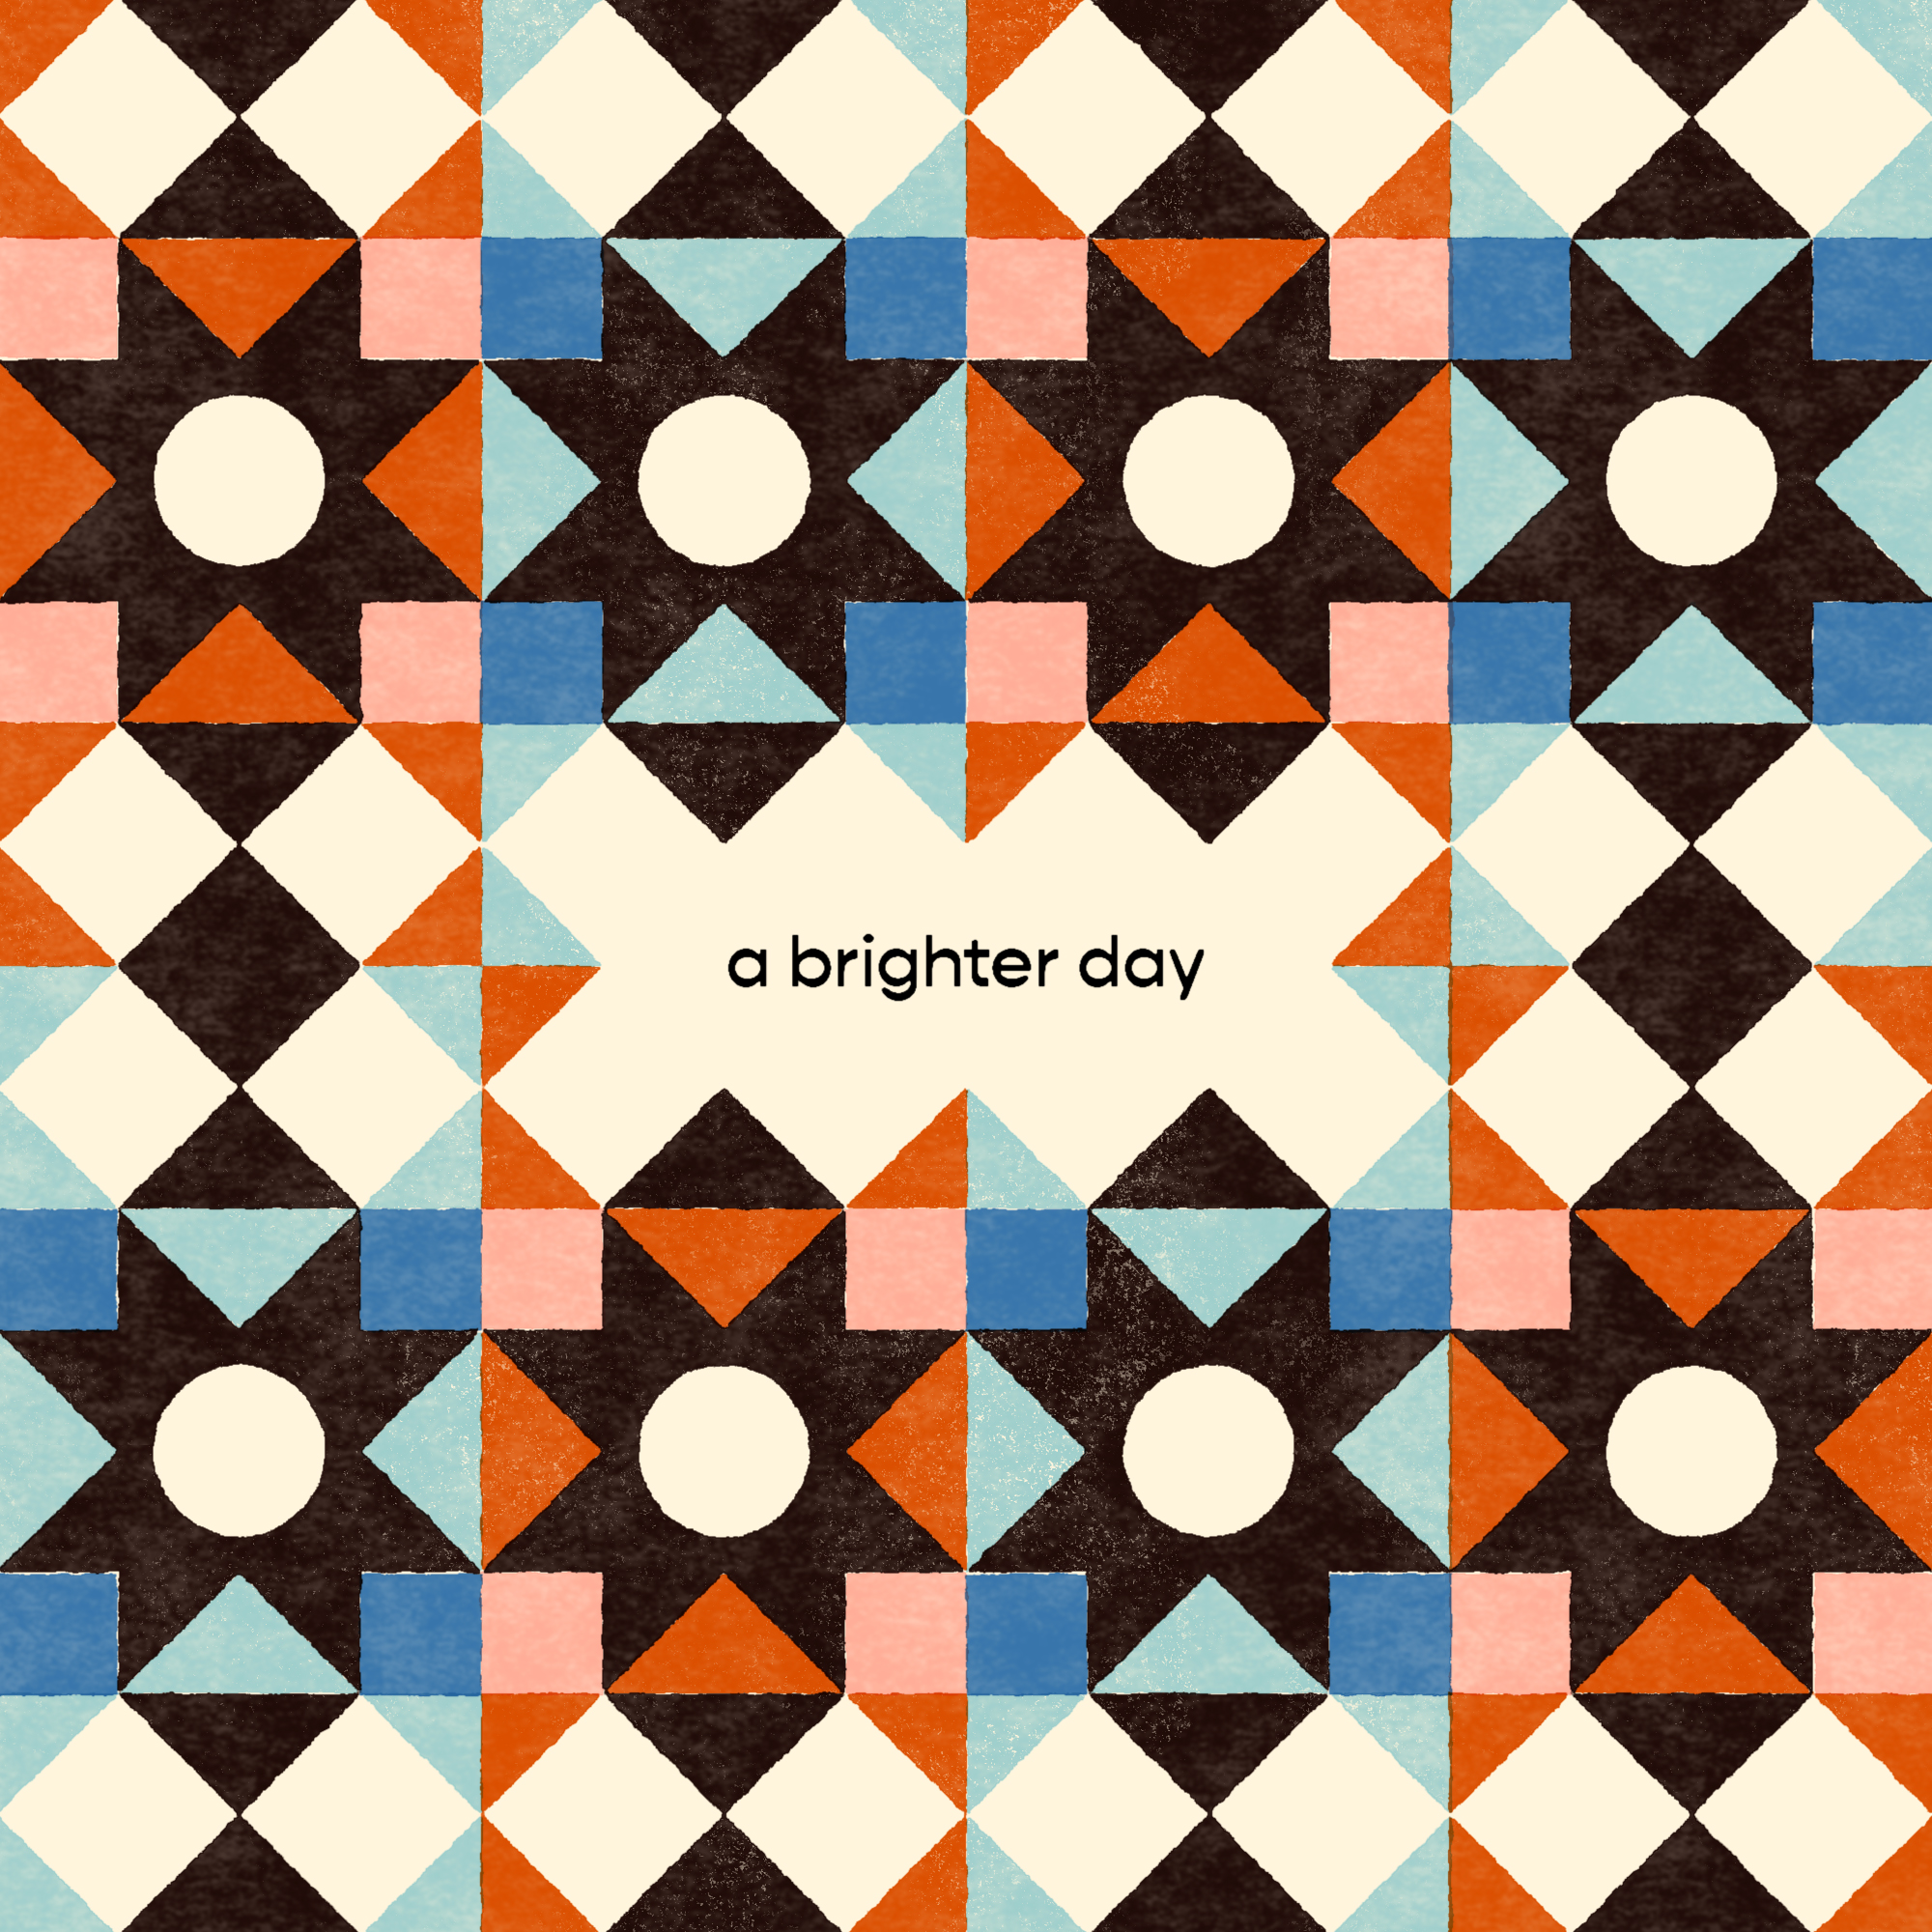 Brighterday-newcolors-copy